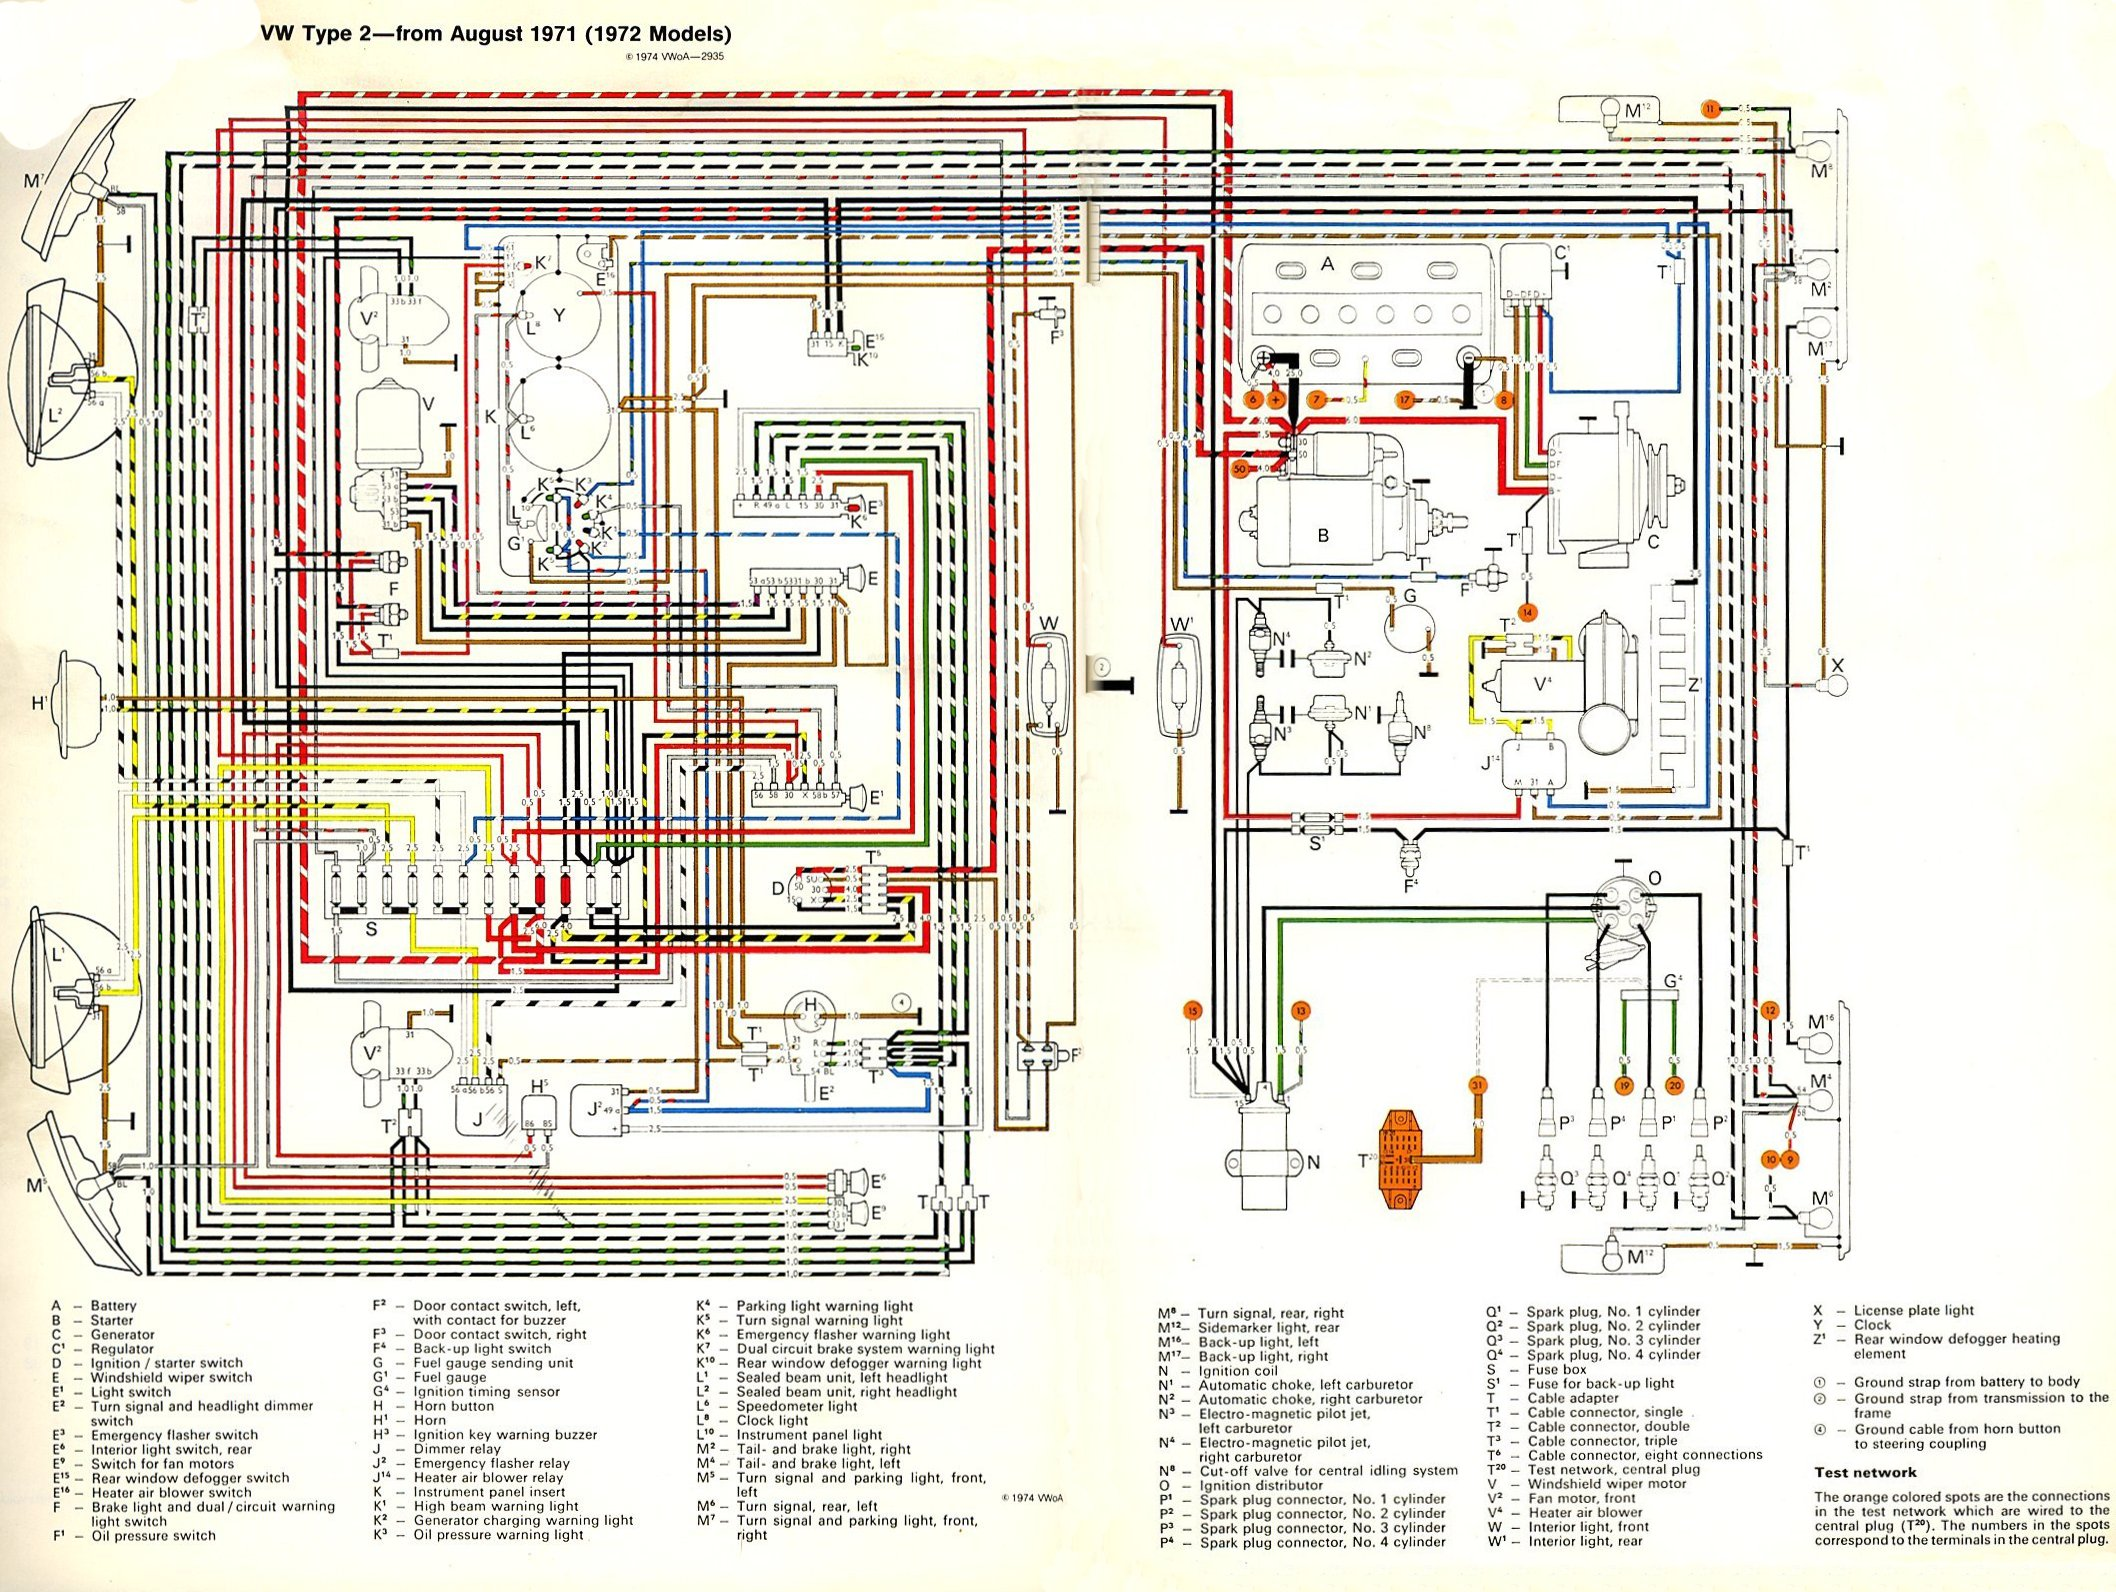 bus_1972_wiring wiring diagram for 1971 vw beetle the wiring diagram 1975 c10 wiring diagram at crackthecode.co